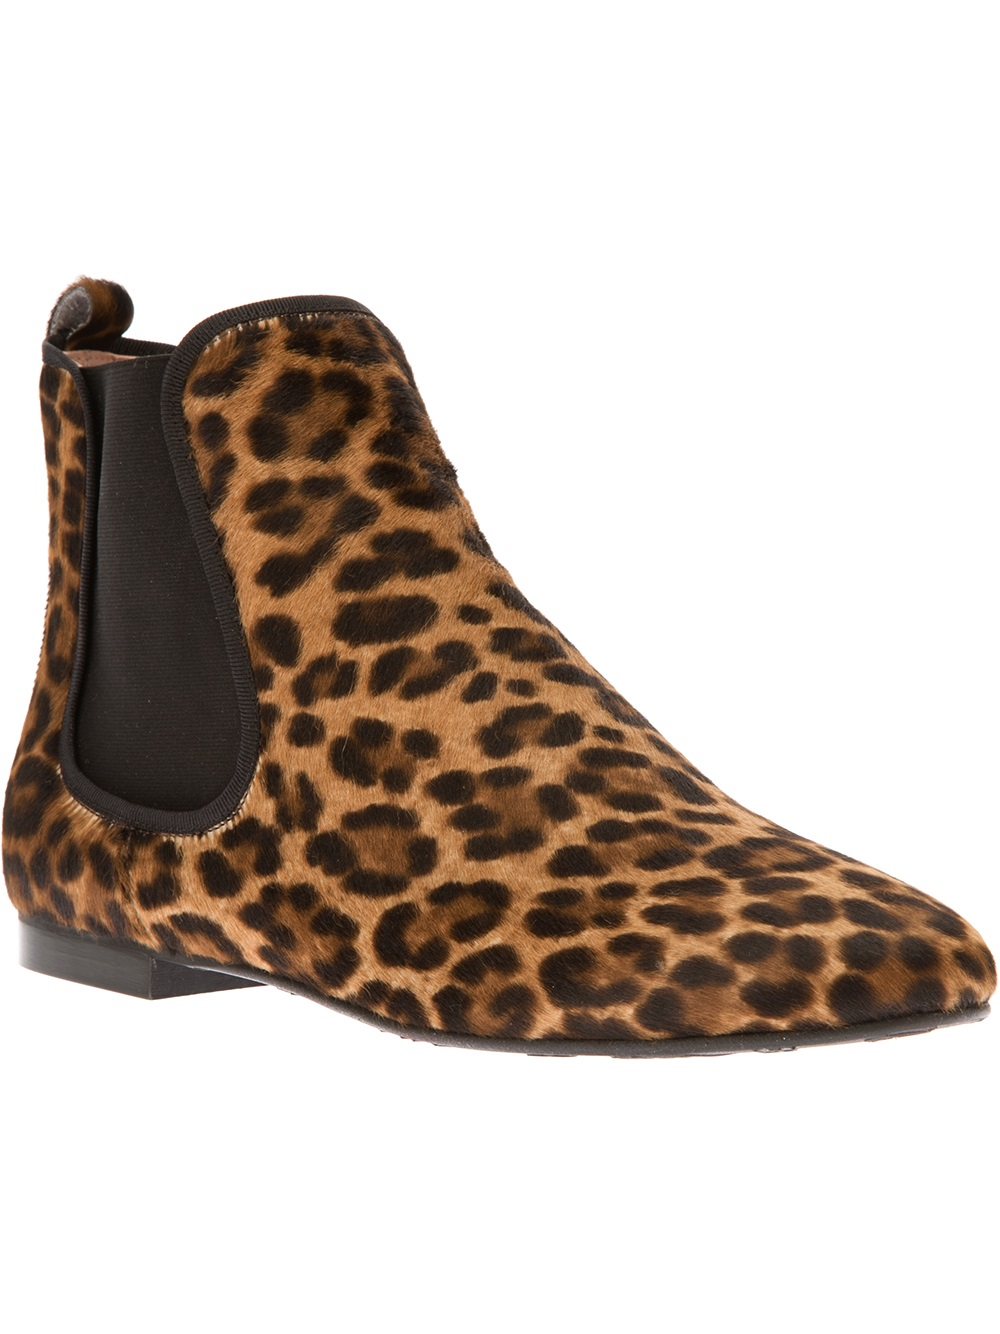 How To Wear Leopard Ankle Boots. Leave a comment. Let's talk about marvellous combinations of shoes. In today's post I want to draw your attention to this interesting topic called: how to wear leopard ankle boots. Leopard print can look awesome combined with safari inspired clothing. Natural sandy hues, neutral brown, khaki and beige hues.